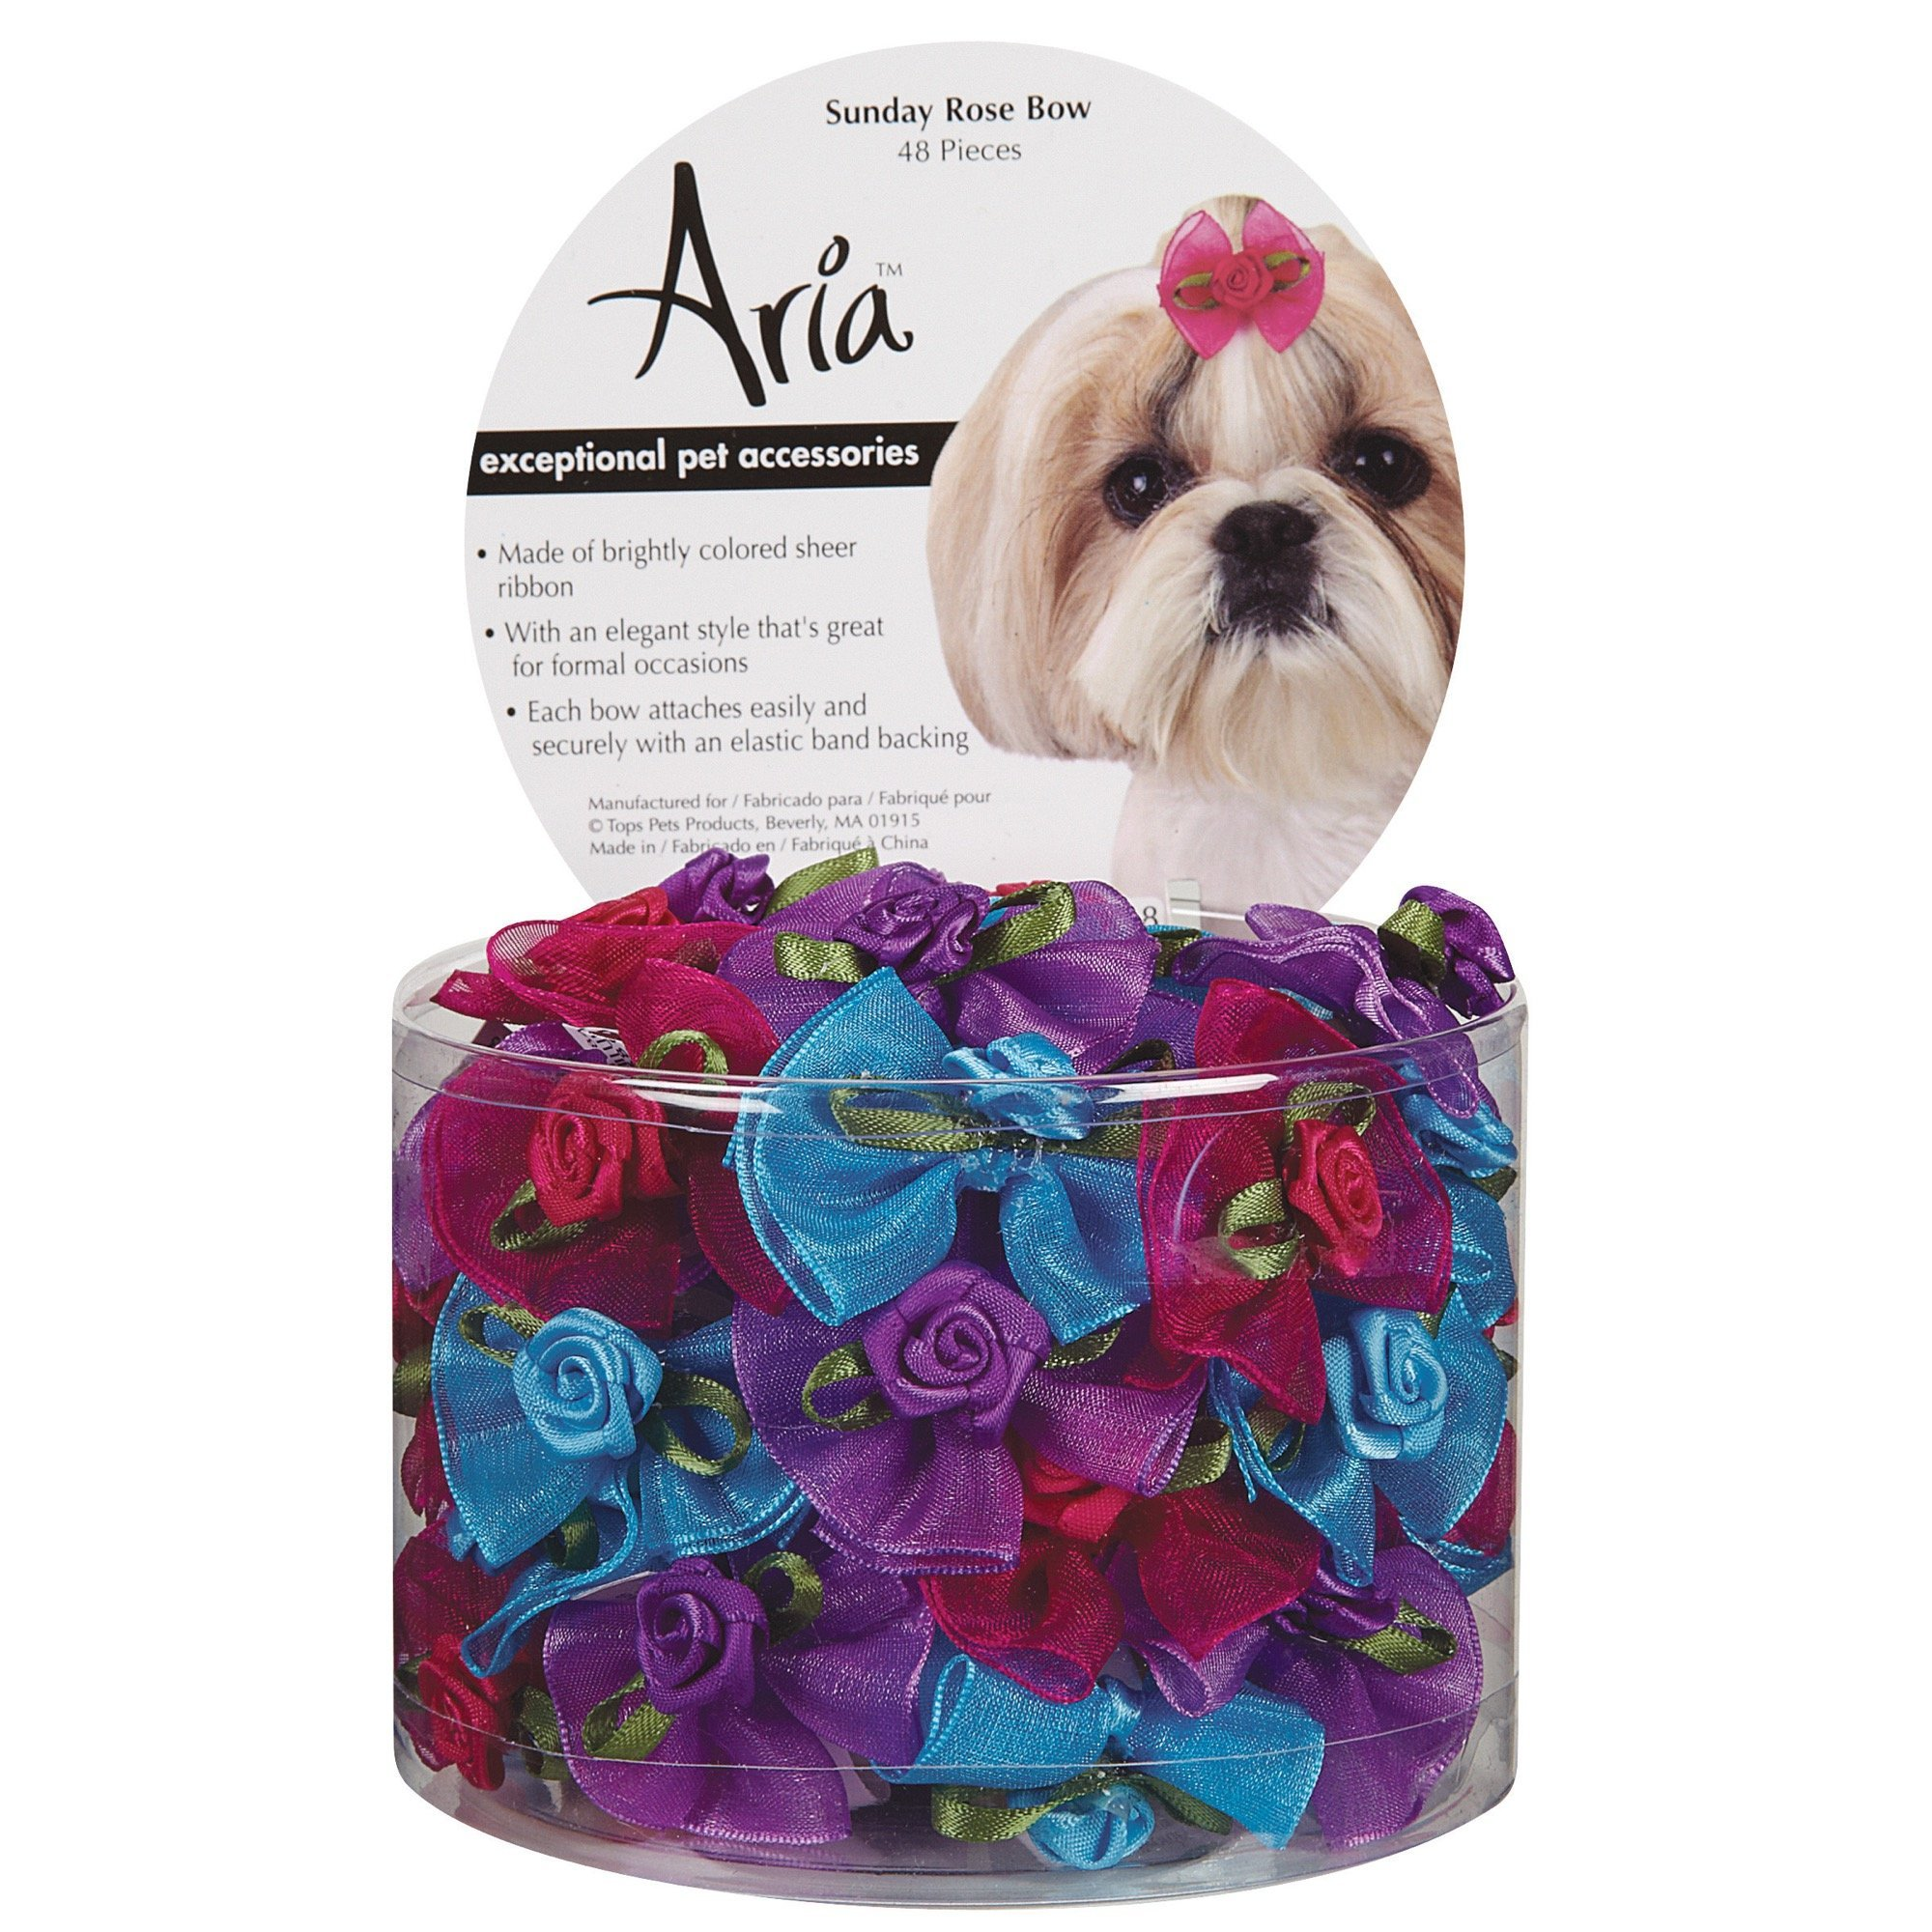 Aria Sunday Rose Bows for Dogs, 48-Piece Canisters by Aria